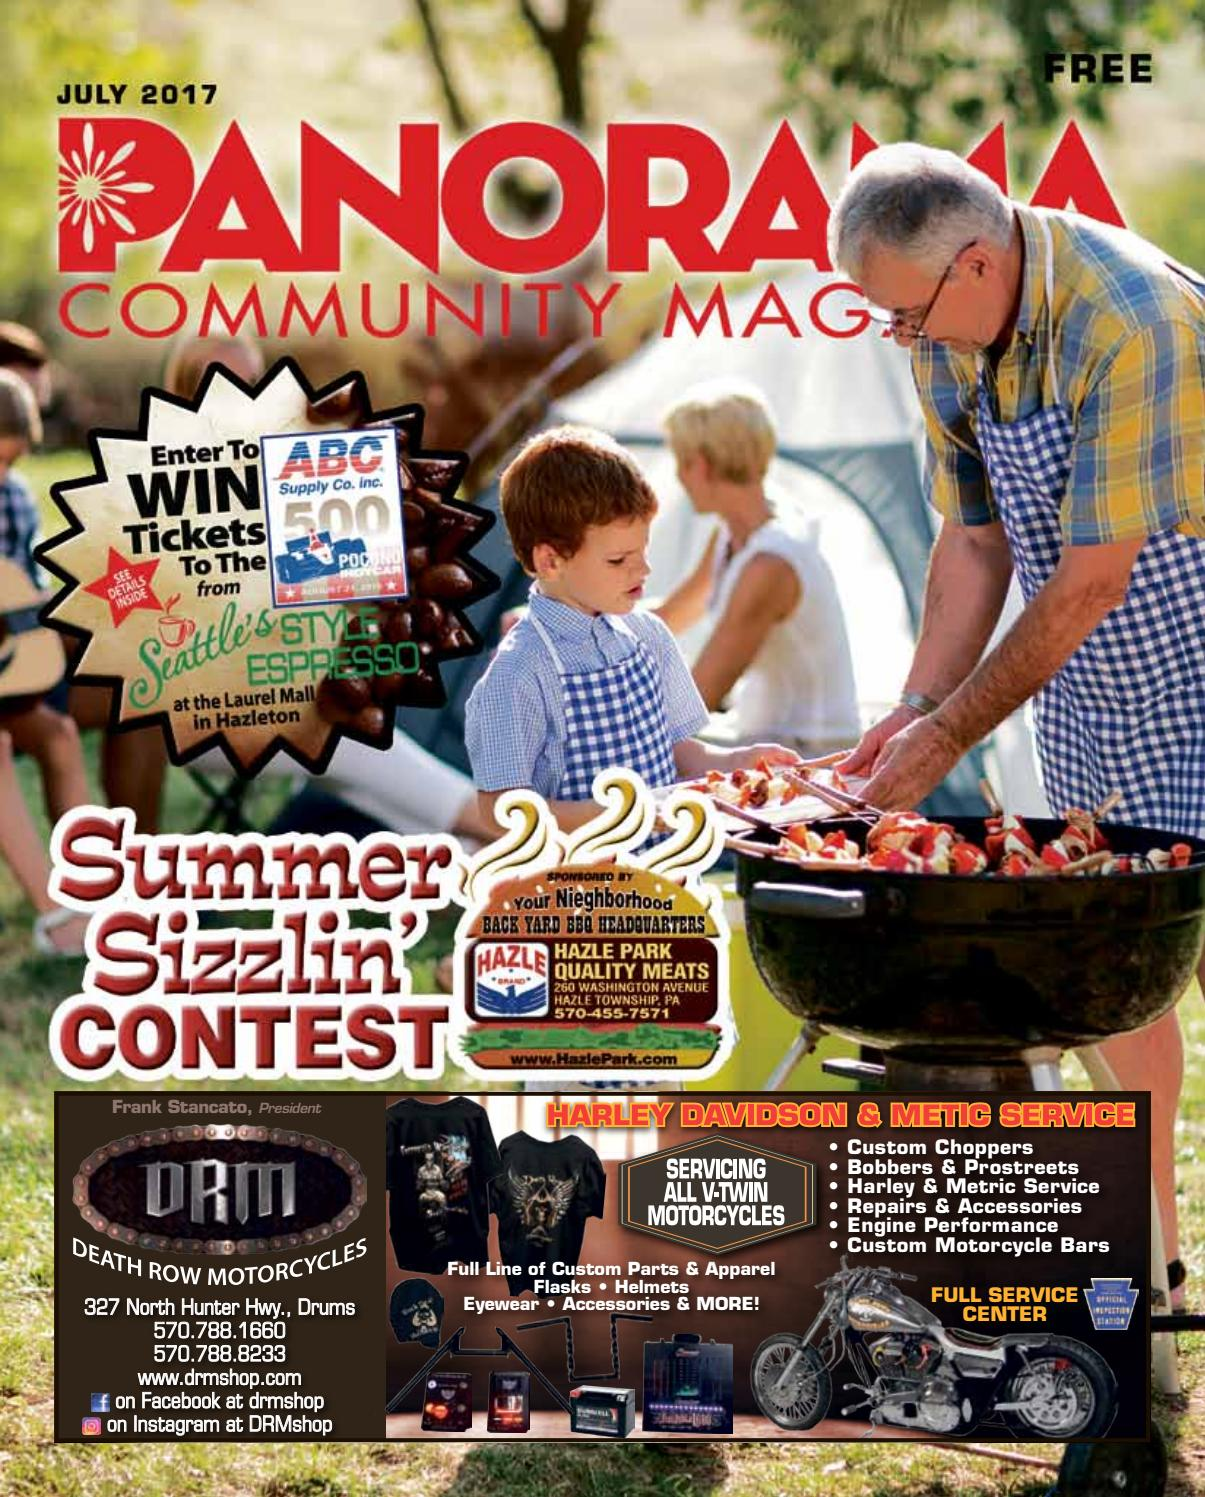 Kitchen gallery design center north broad street west hazleton pa - Panorama Community Magazine July 2017 By Panorama Community Magazine Issuu